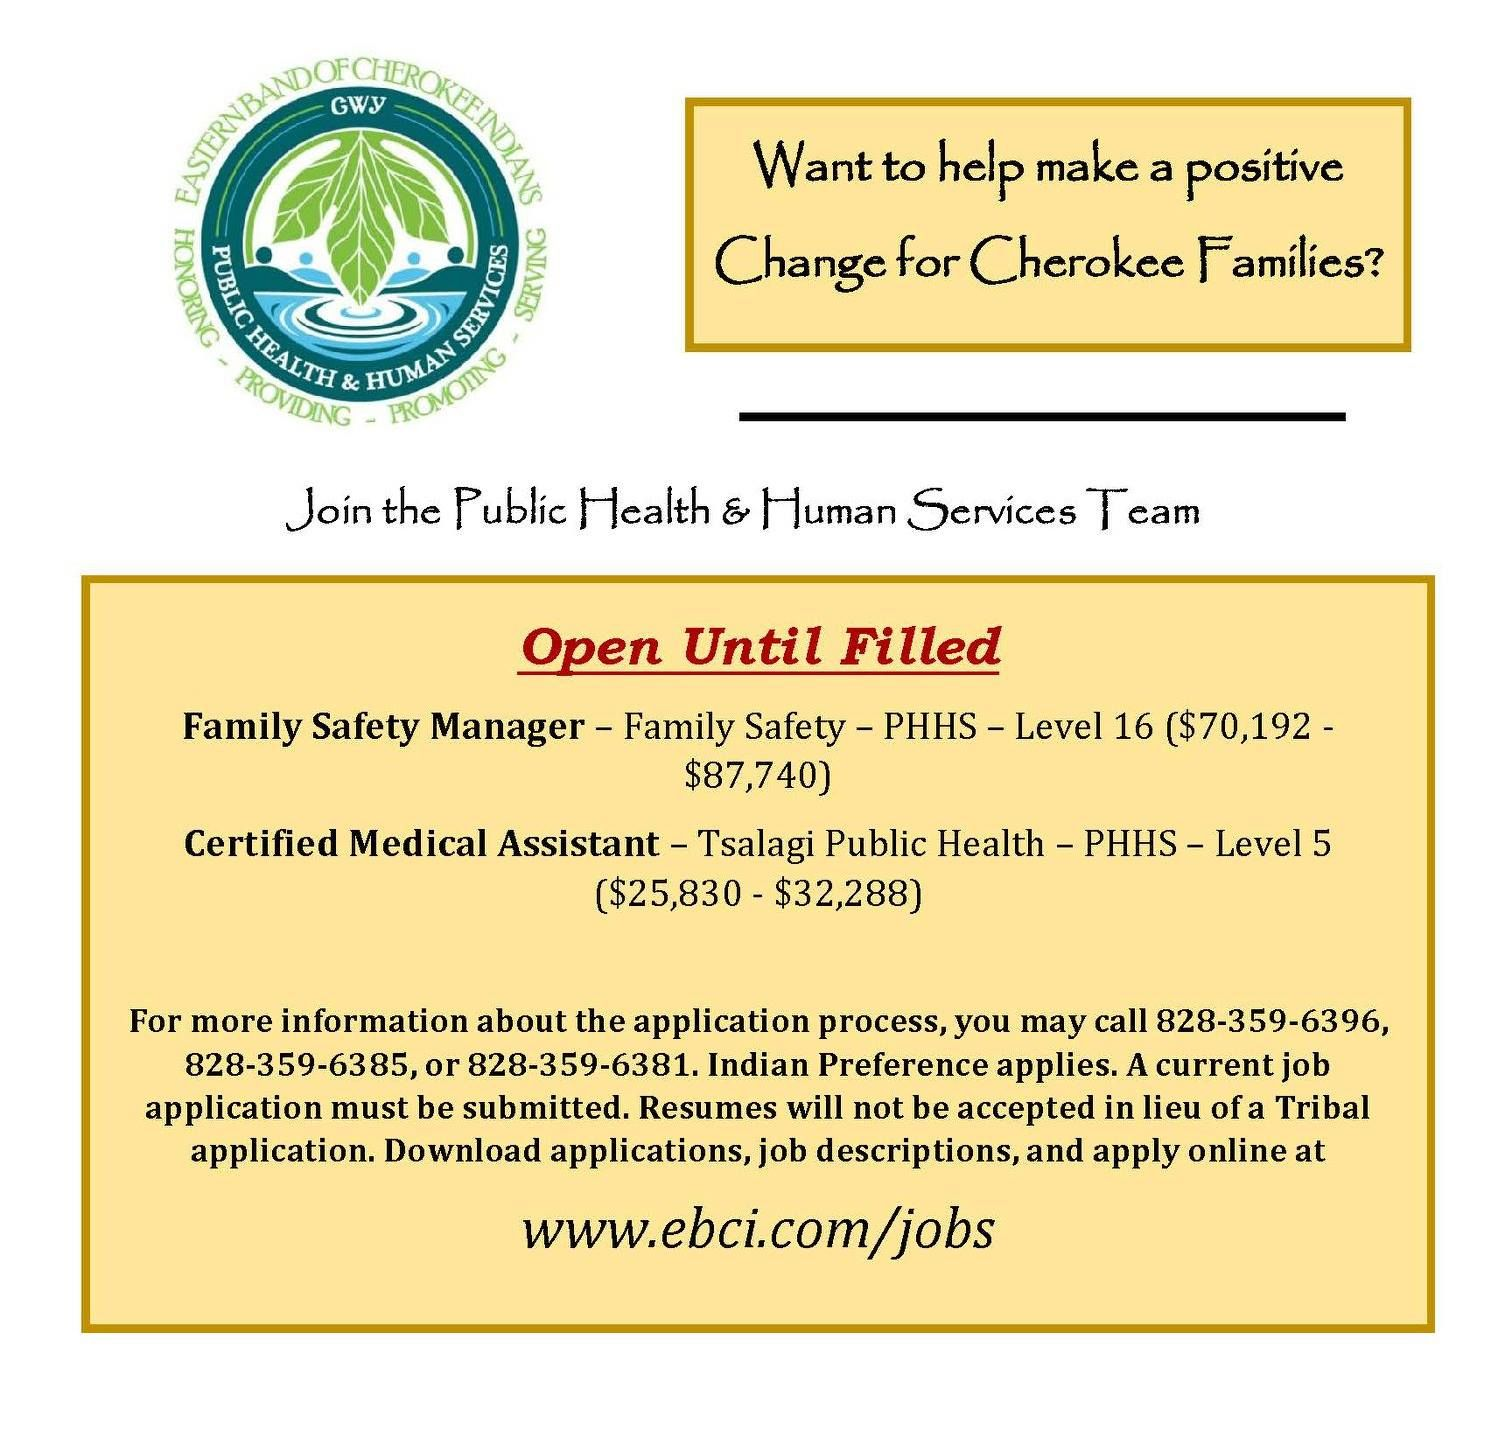 Pin by EBCI Public Health & Human Services on PHHS Job